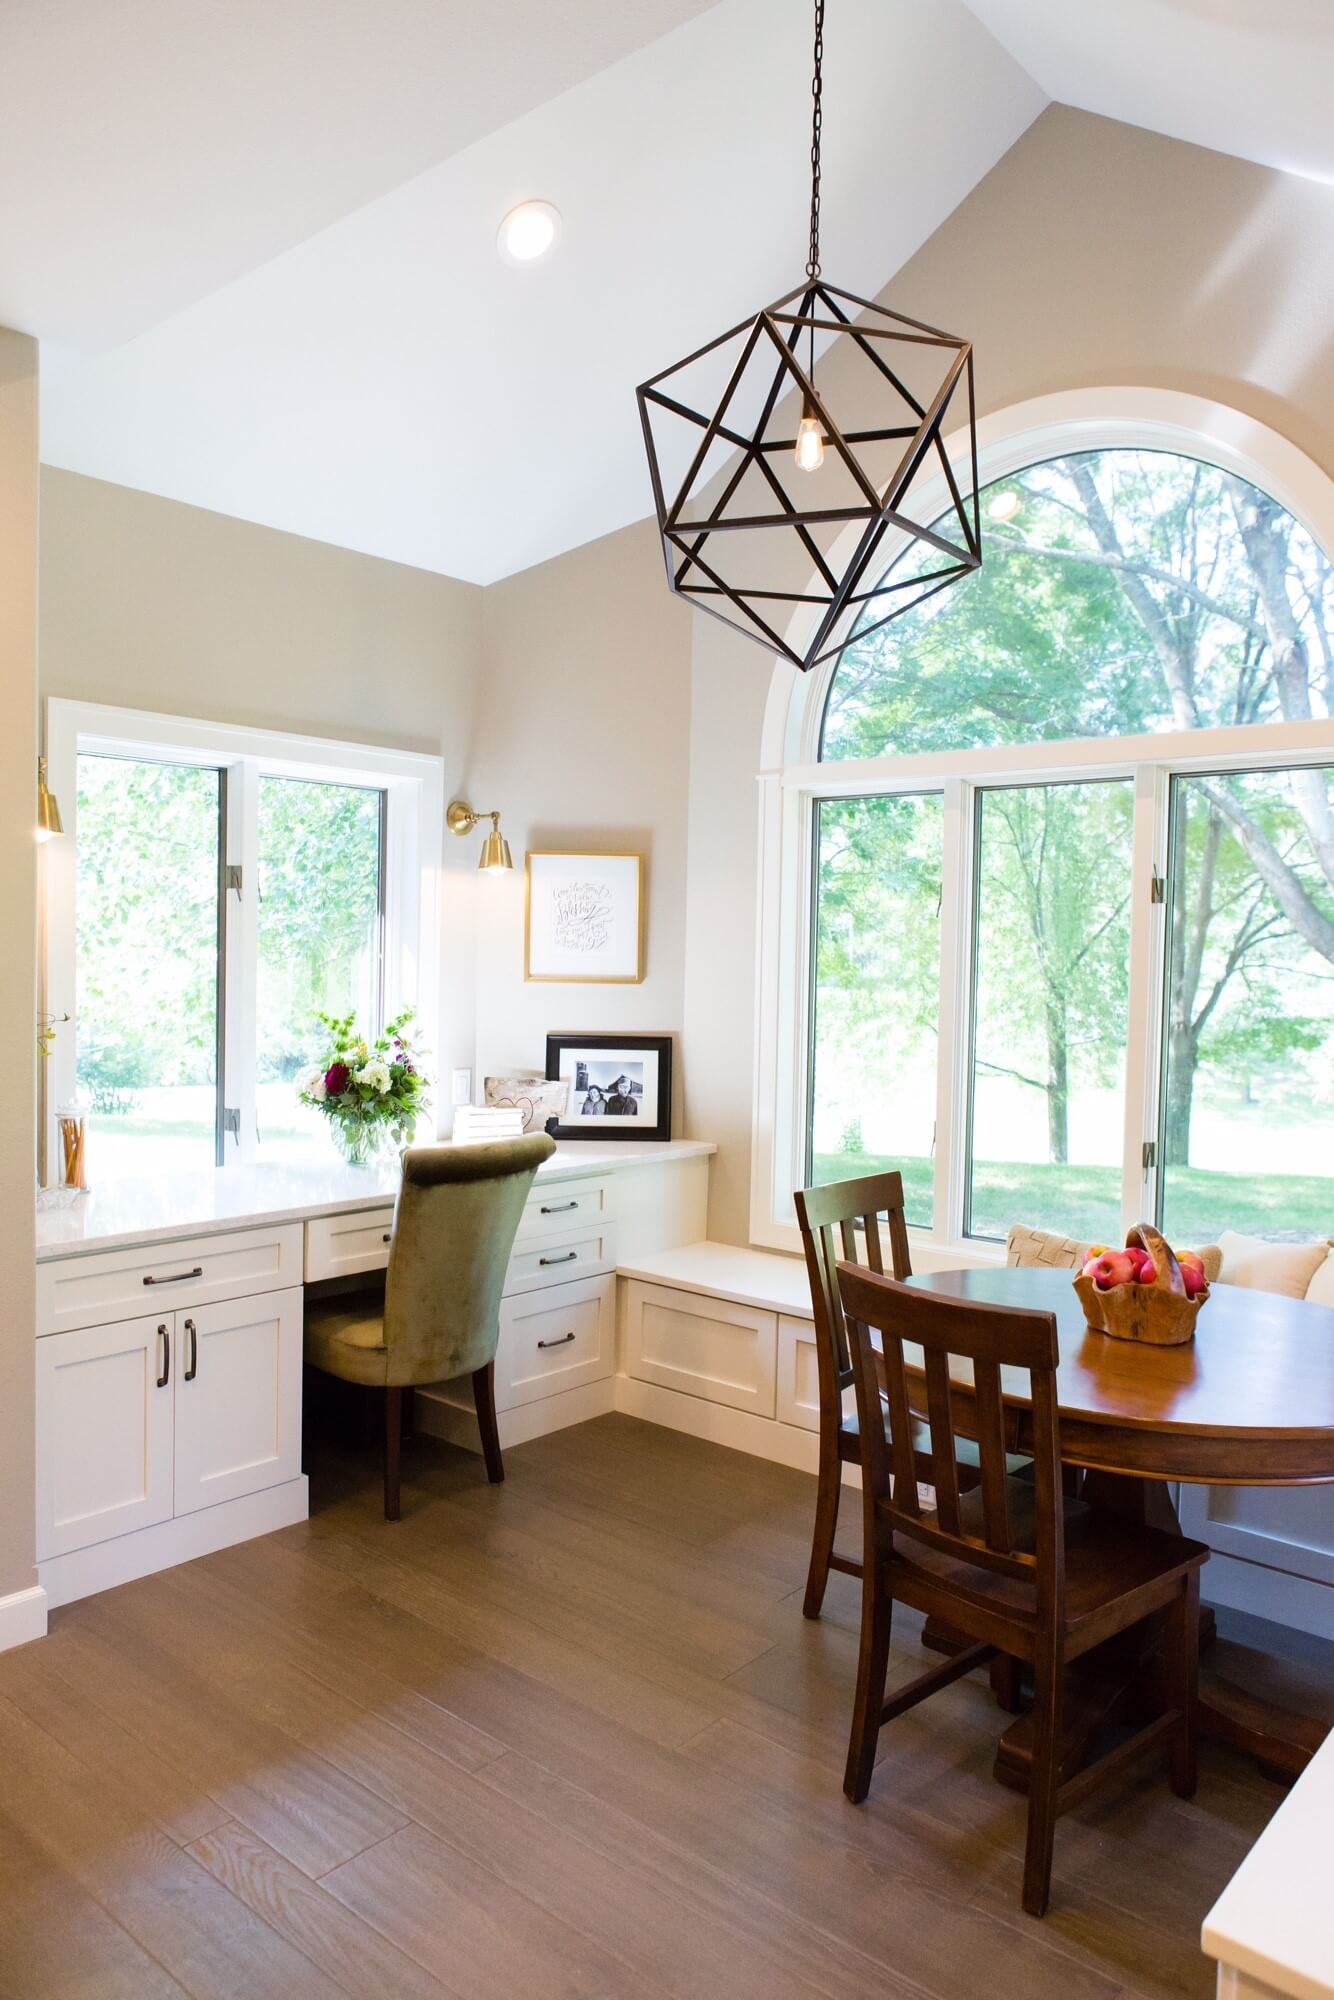 Kitchen with desk, designed by Megan Courtney of Cabinet Style LLC.